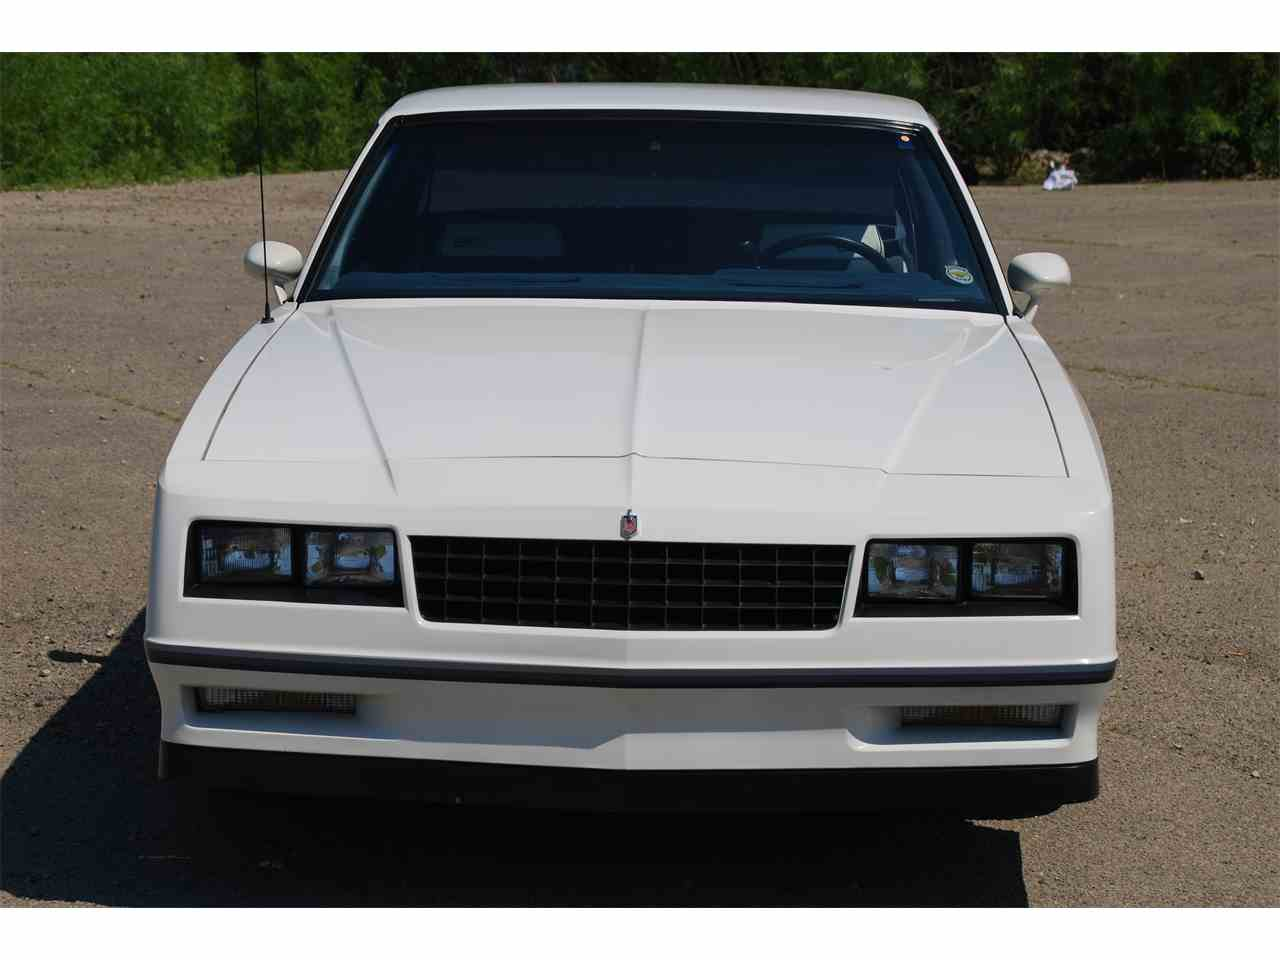 Large Picture of 1983 Chevrolet Monte Carlo SS located in East Peoria Illinois Offered by Uftring Auto Group - LVHX